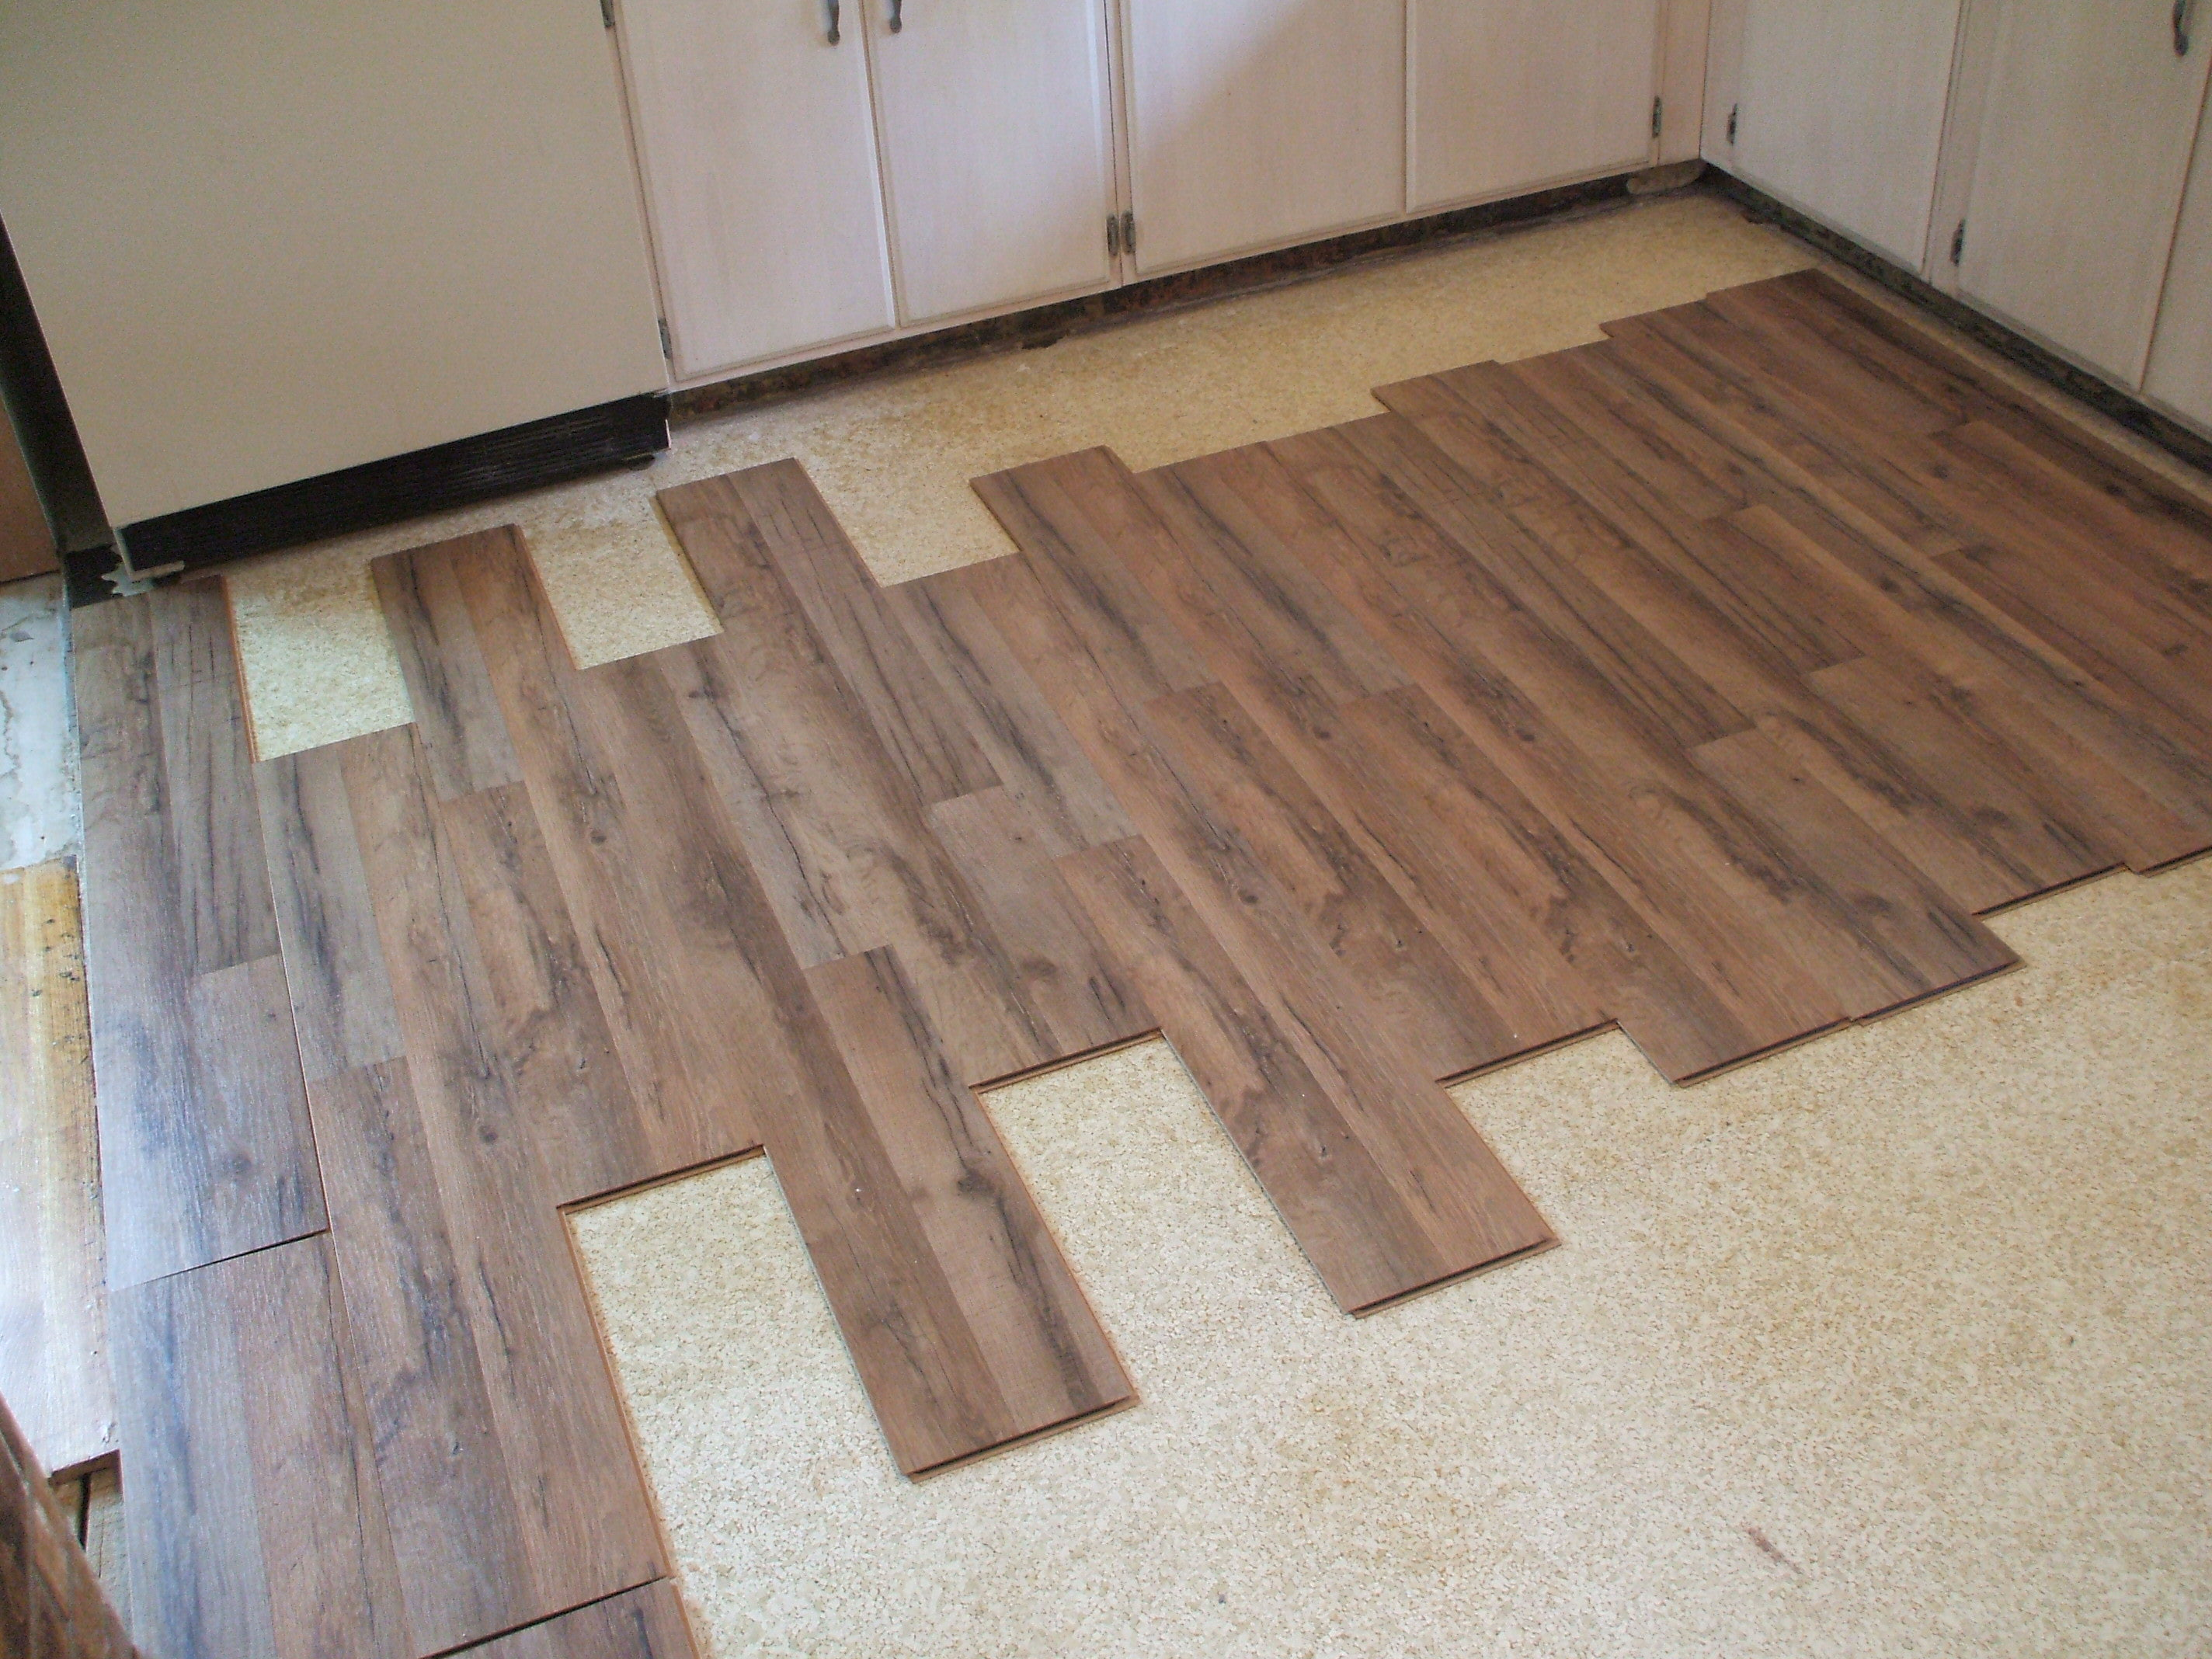 Best Flooring In Kitchen Flooring Options For Your Rental Home Which Is Best